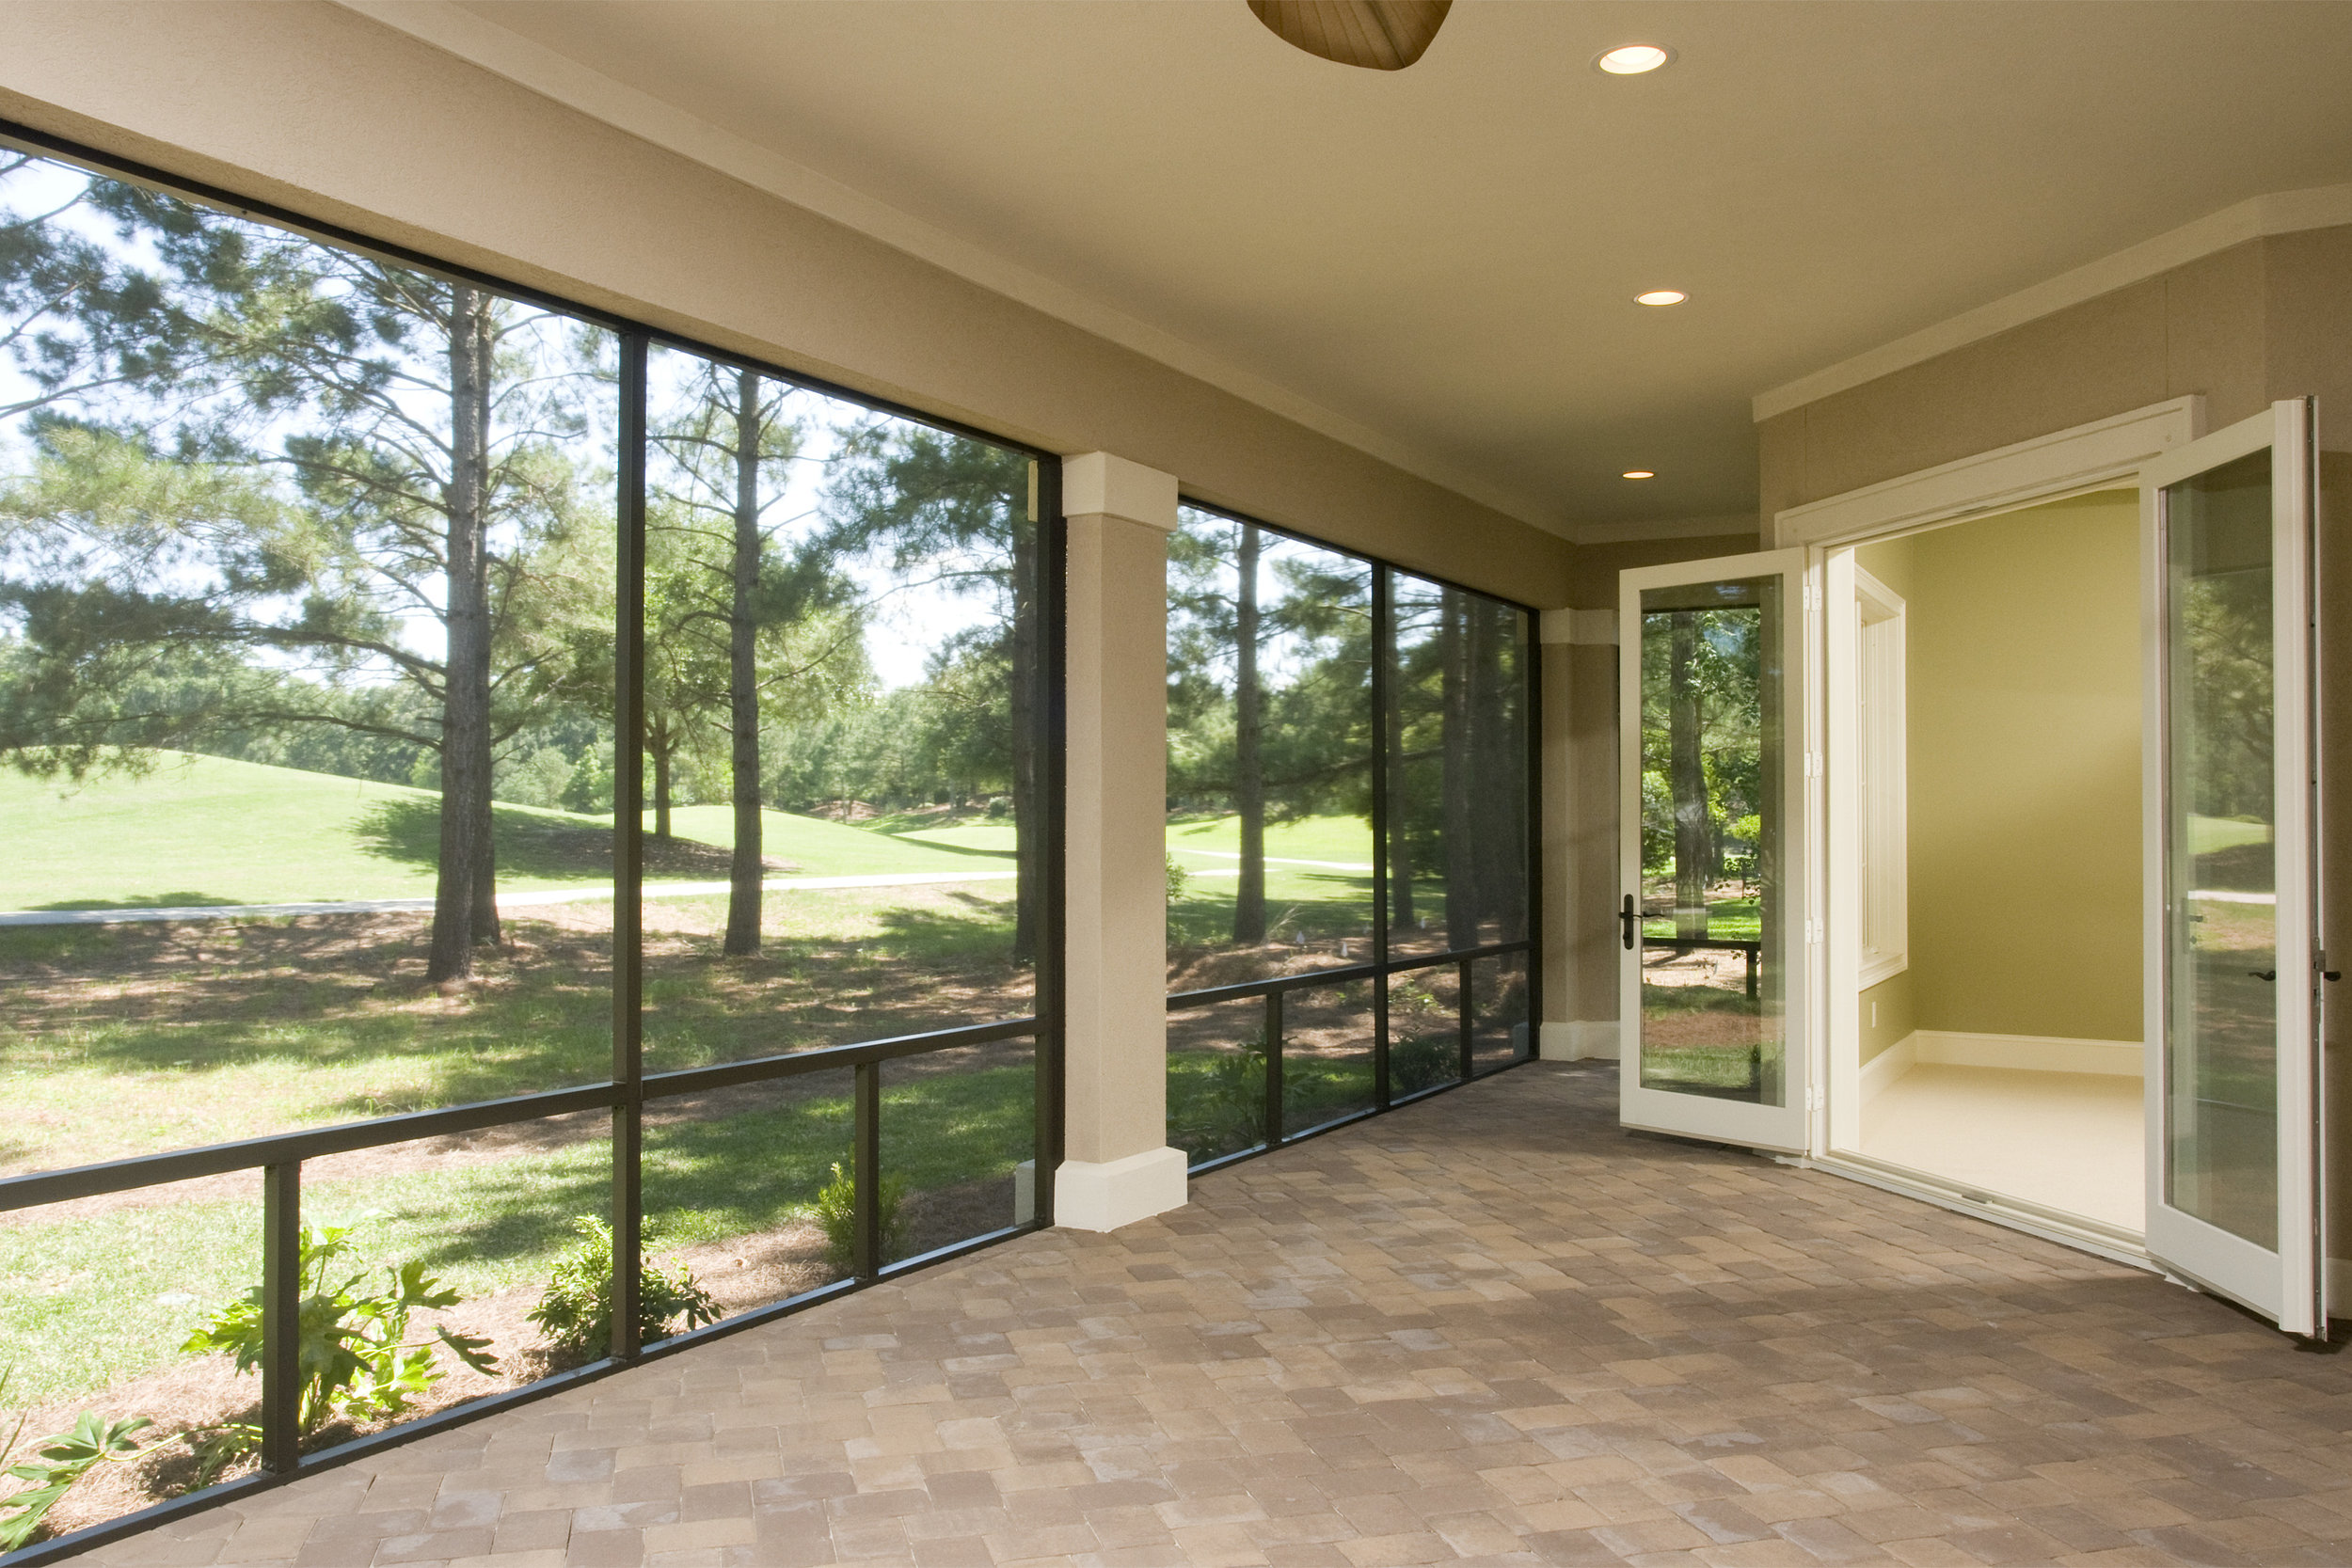 Thin Pavers    Also Known As Remodeling Pavers Are Perfect For Overlaying Lanai Areas